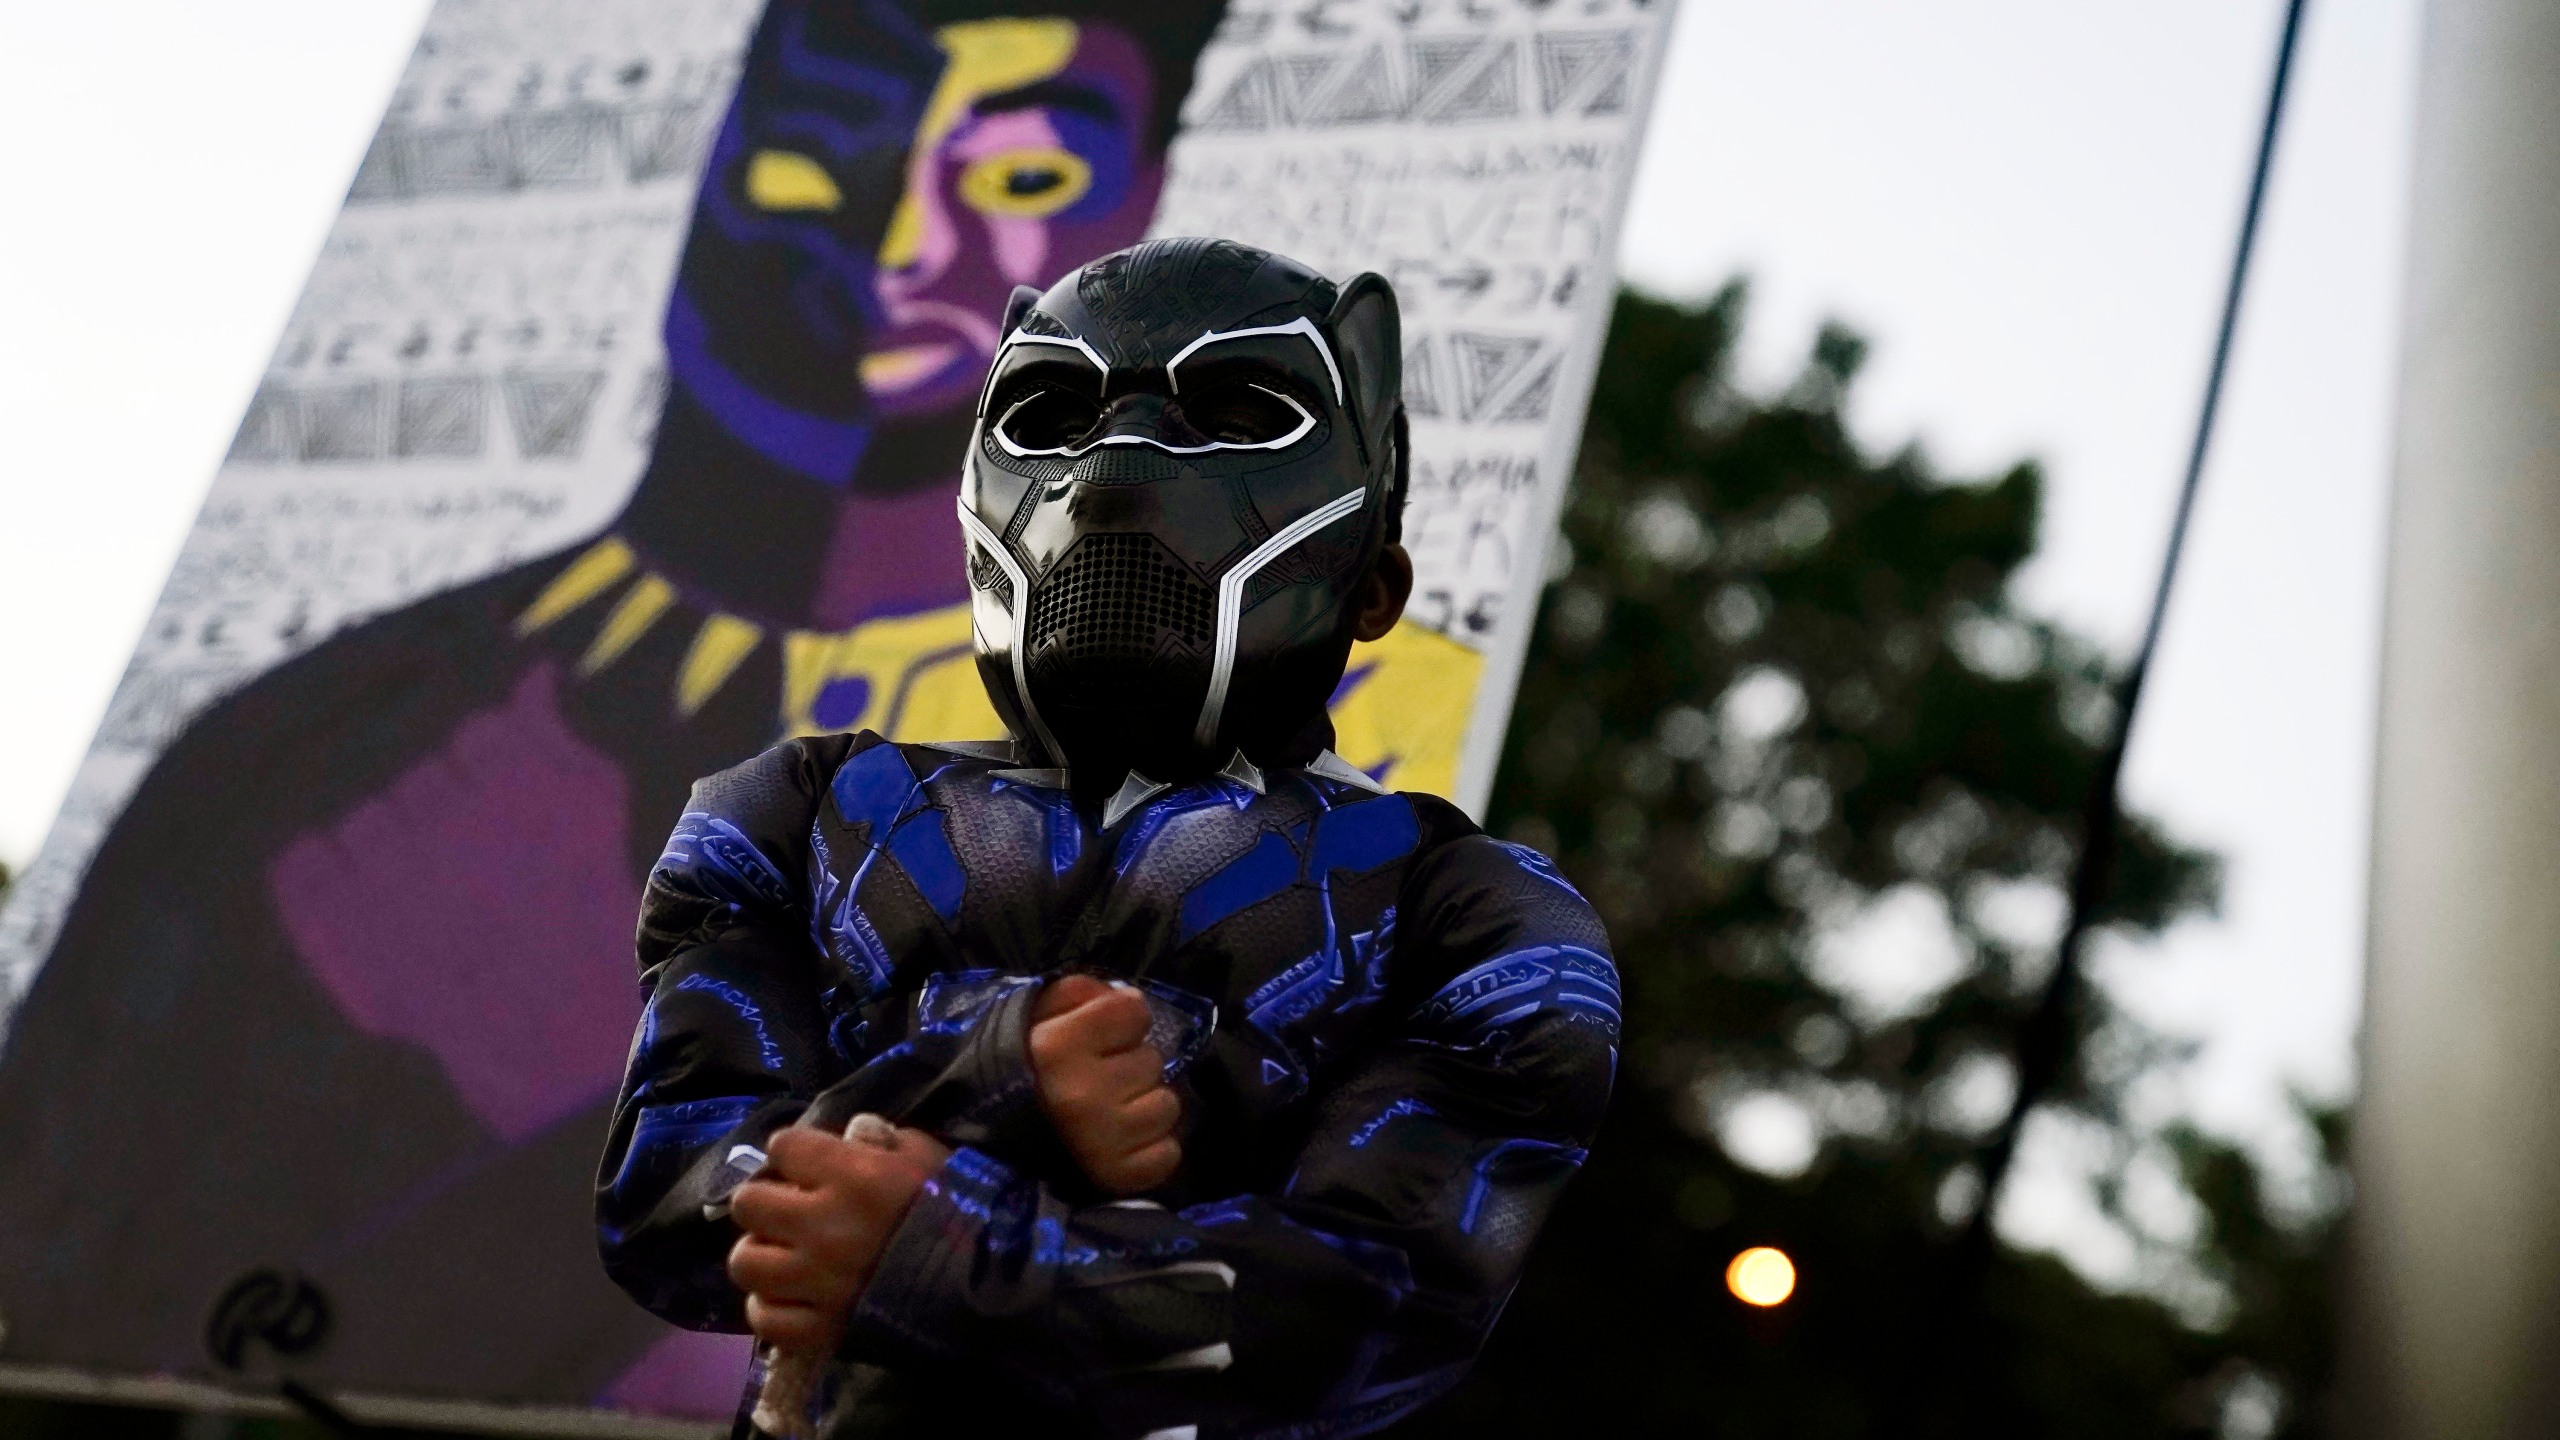 Mason Wilkes, 4, of South Carolina, poses for his father in a Black Panther costume, in front of a painting during a Chadwick Boseman Tribute on Thursday, Sept. 3, 2020, in Anderson, S.C. (AP Photo/Brynn Anderson)